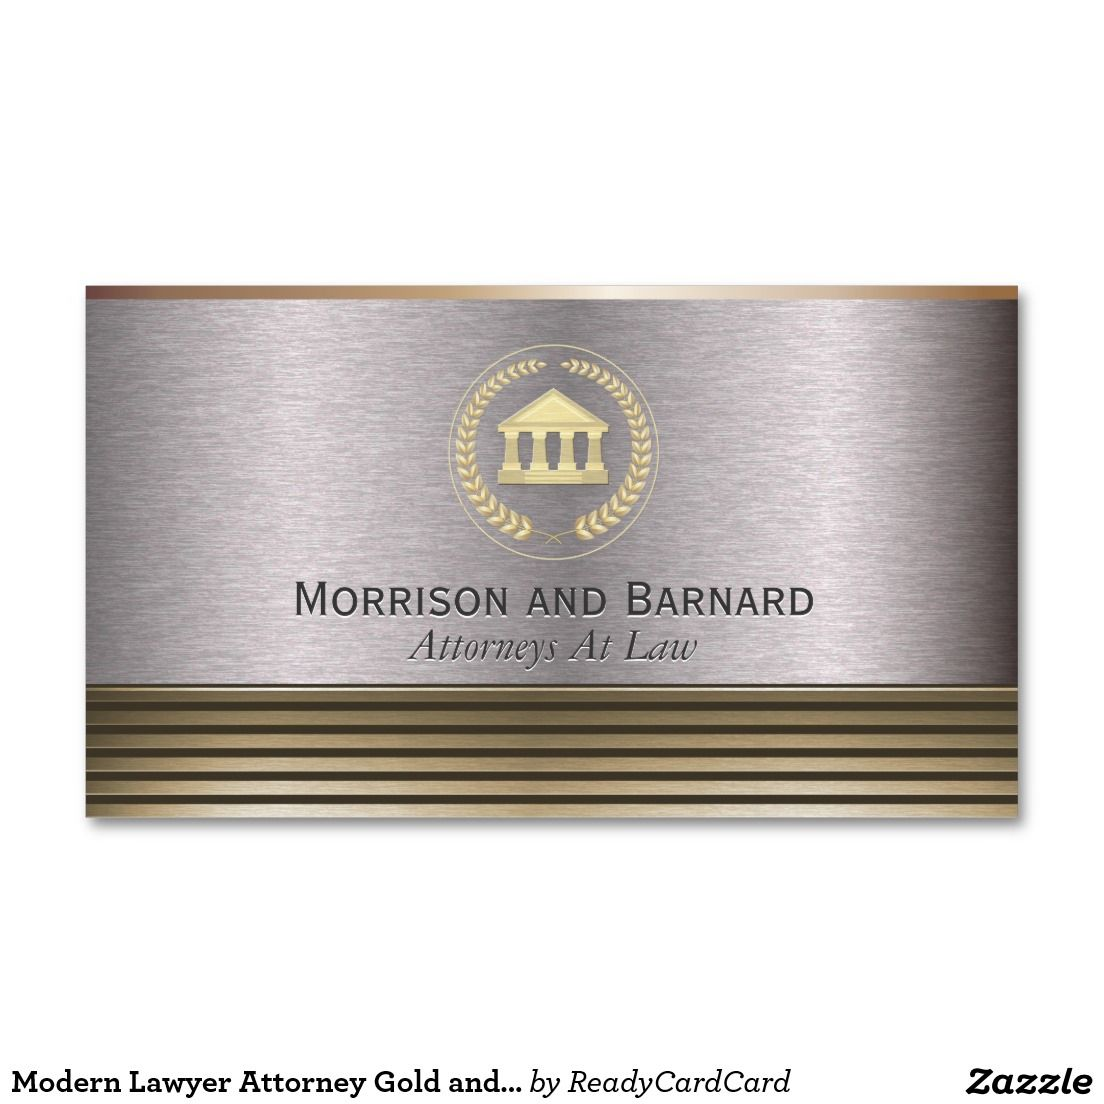 Modern Lawyer Attorney Gold and Silver Courthouse Business Card ...